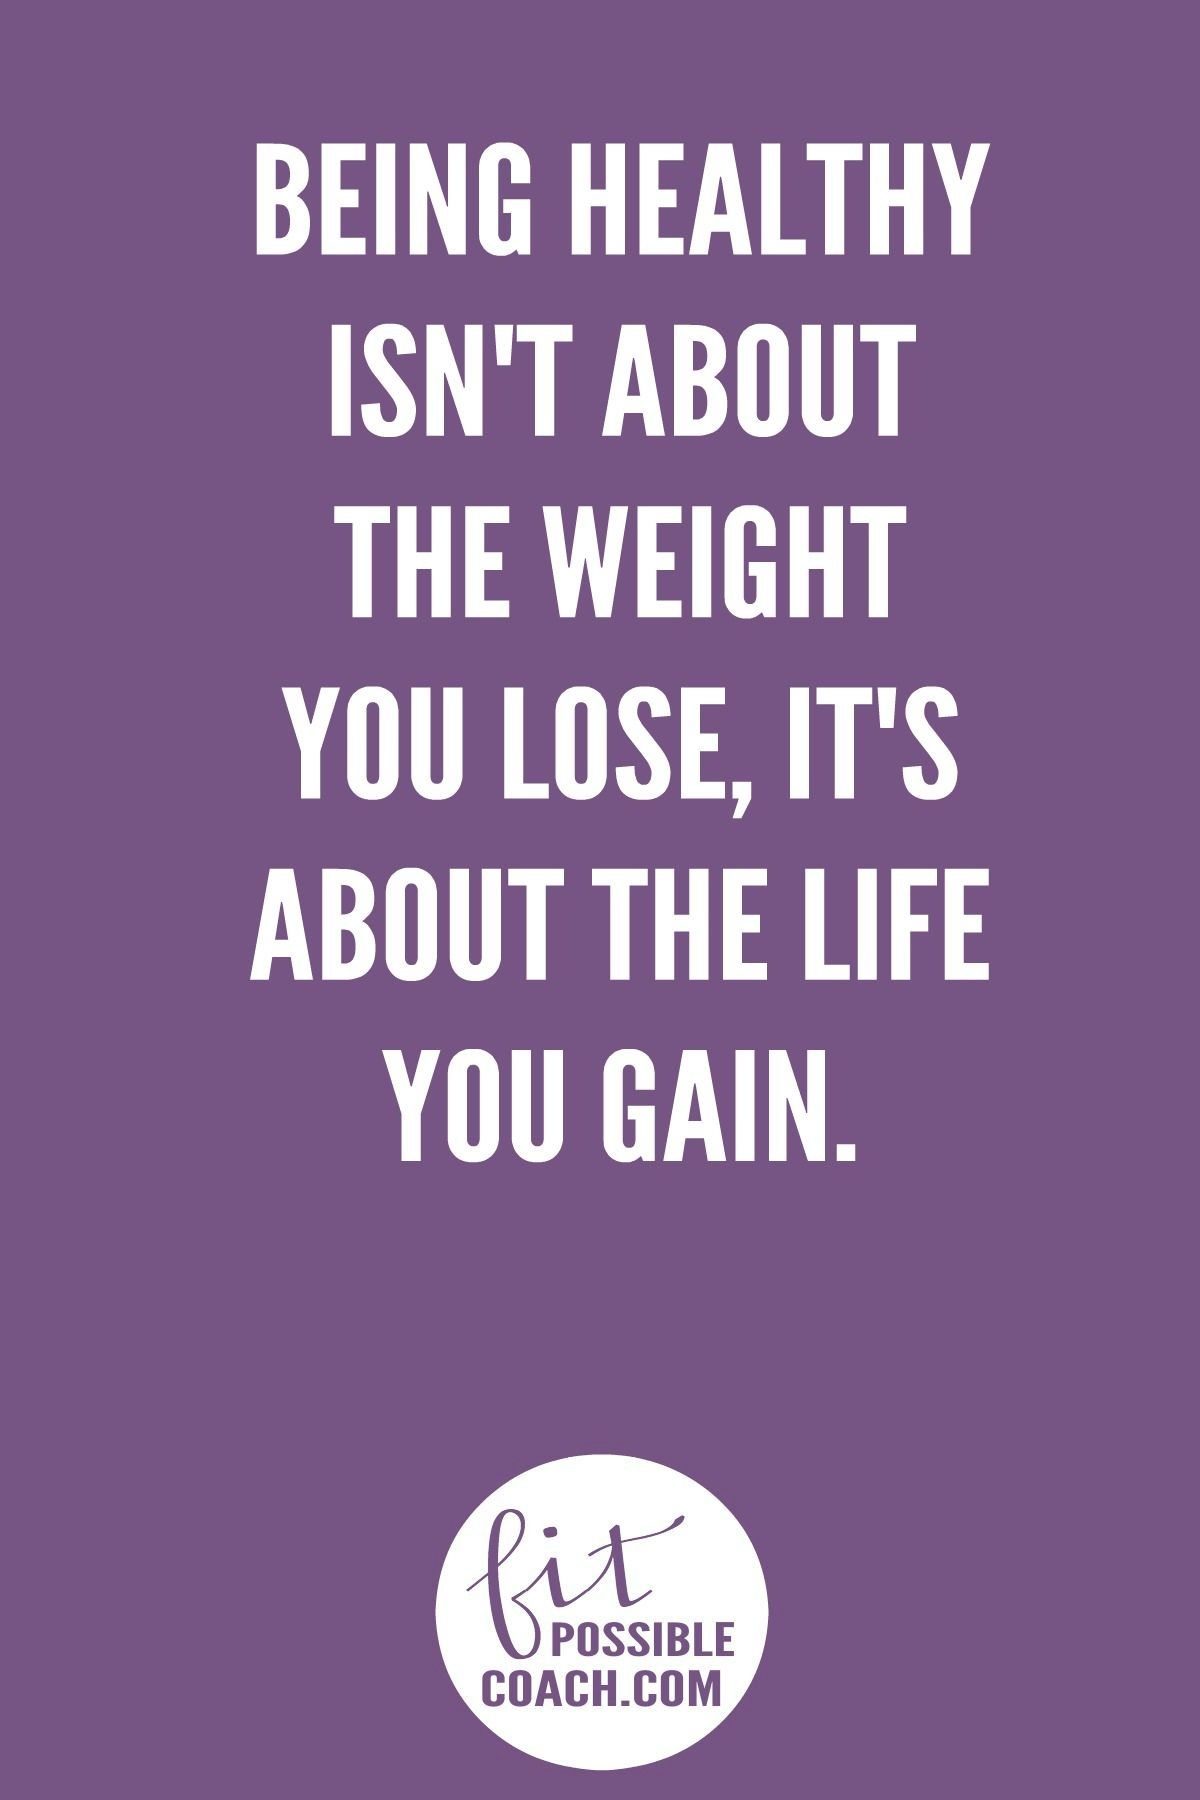 You Daily Health and Fitness Motivation provided by